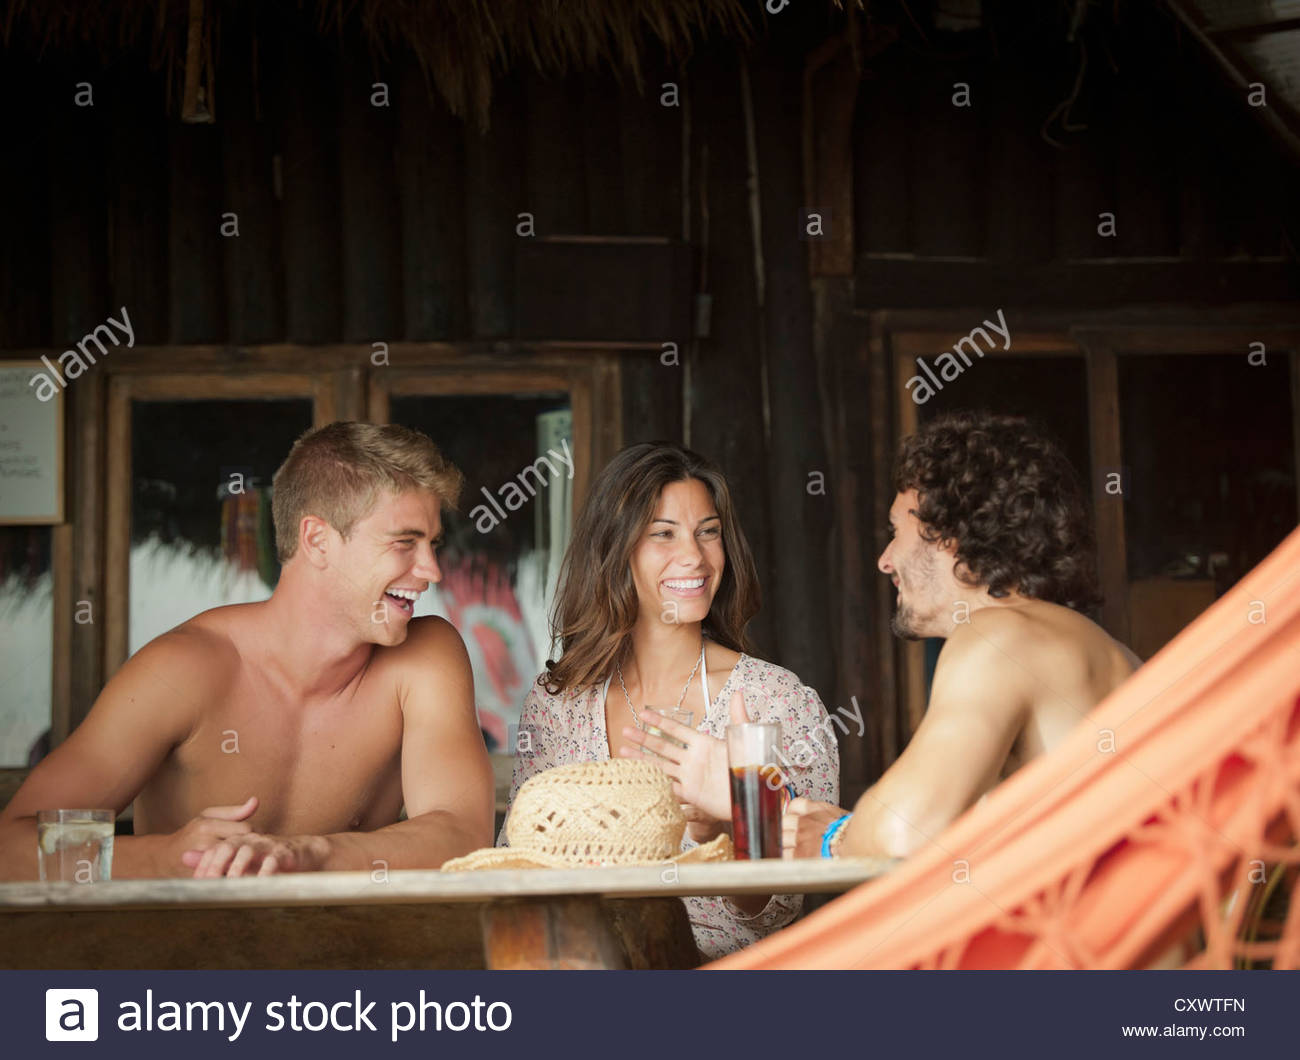 Friends having drinks together - Stock Image